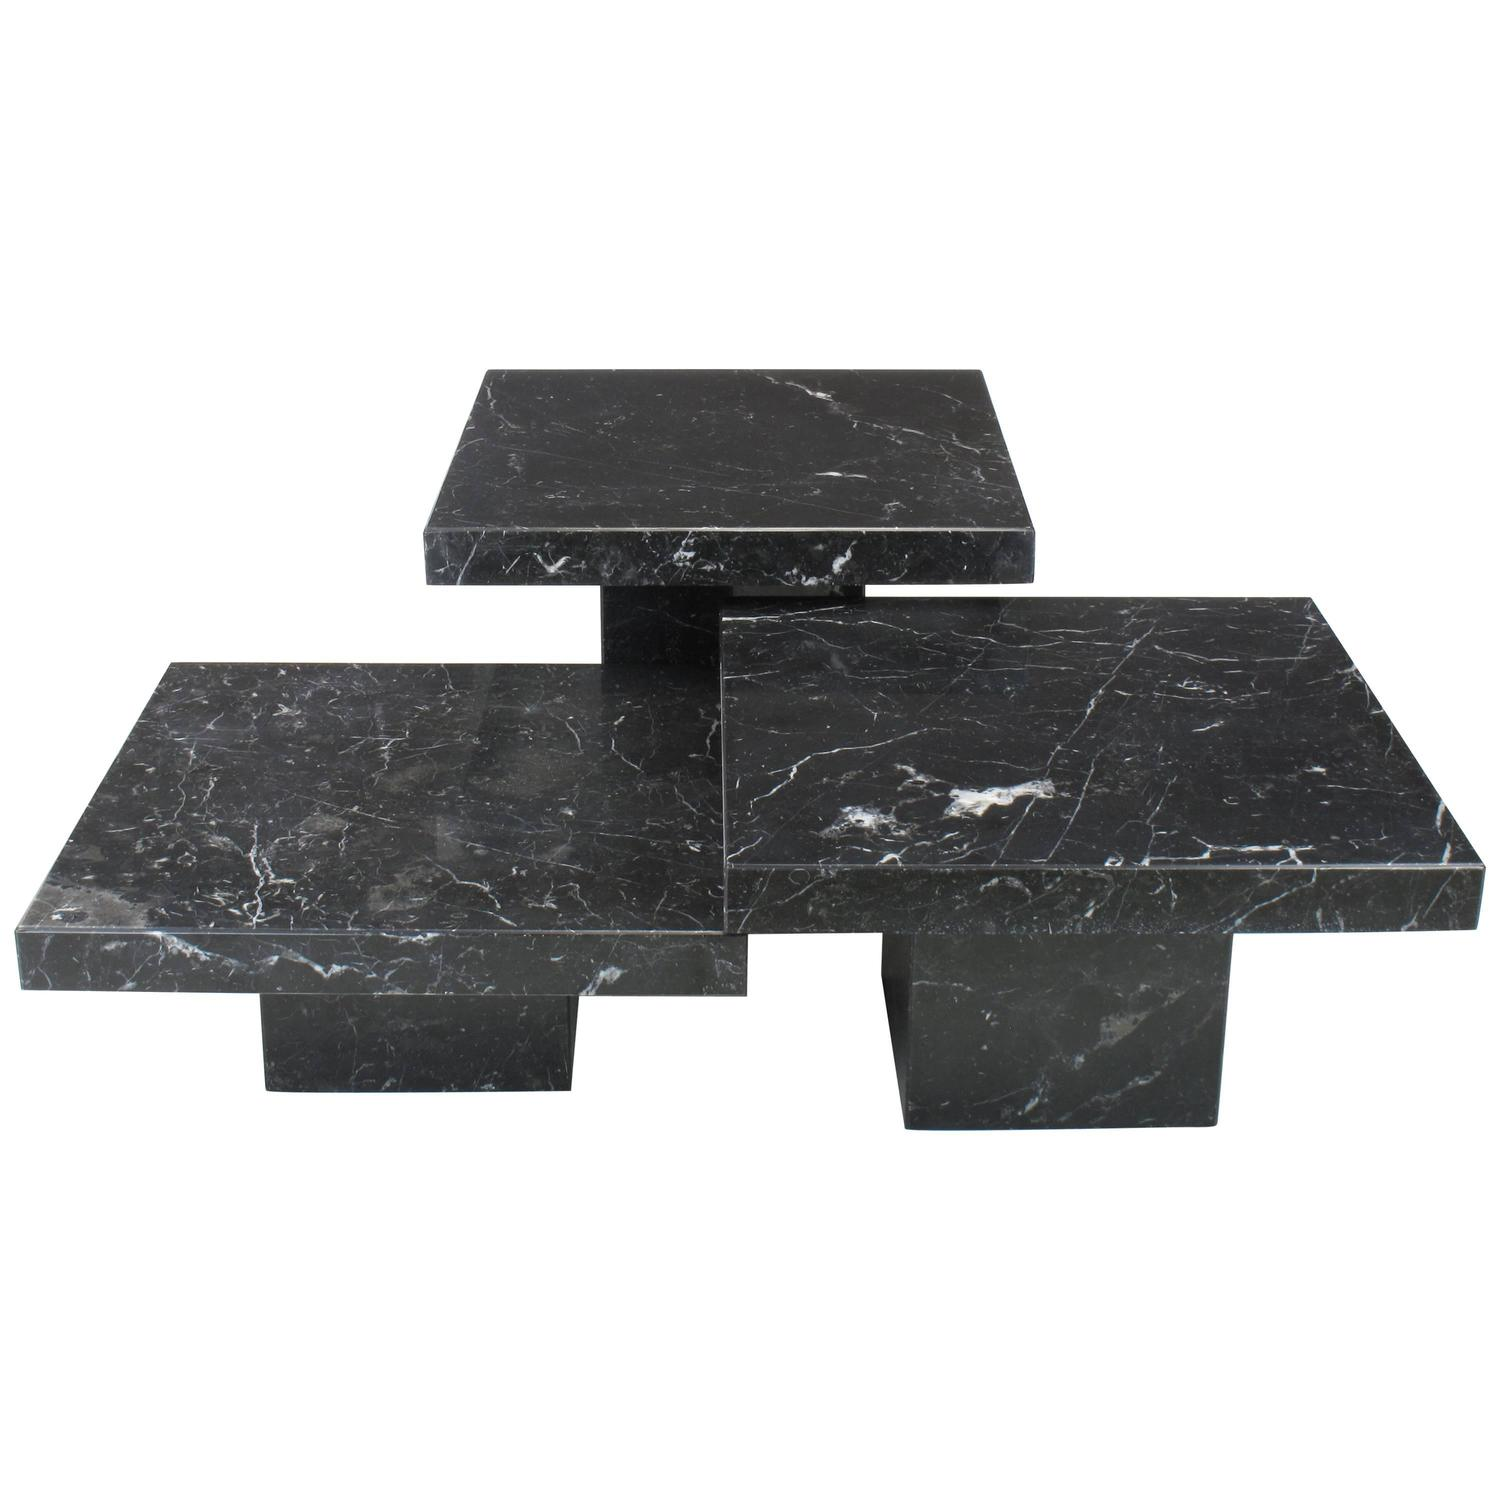 Three Piece Nero Marquina Marble Low Tables By Stone International S.P.A,  Italy At 1stdibs